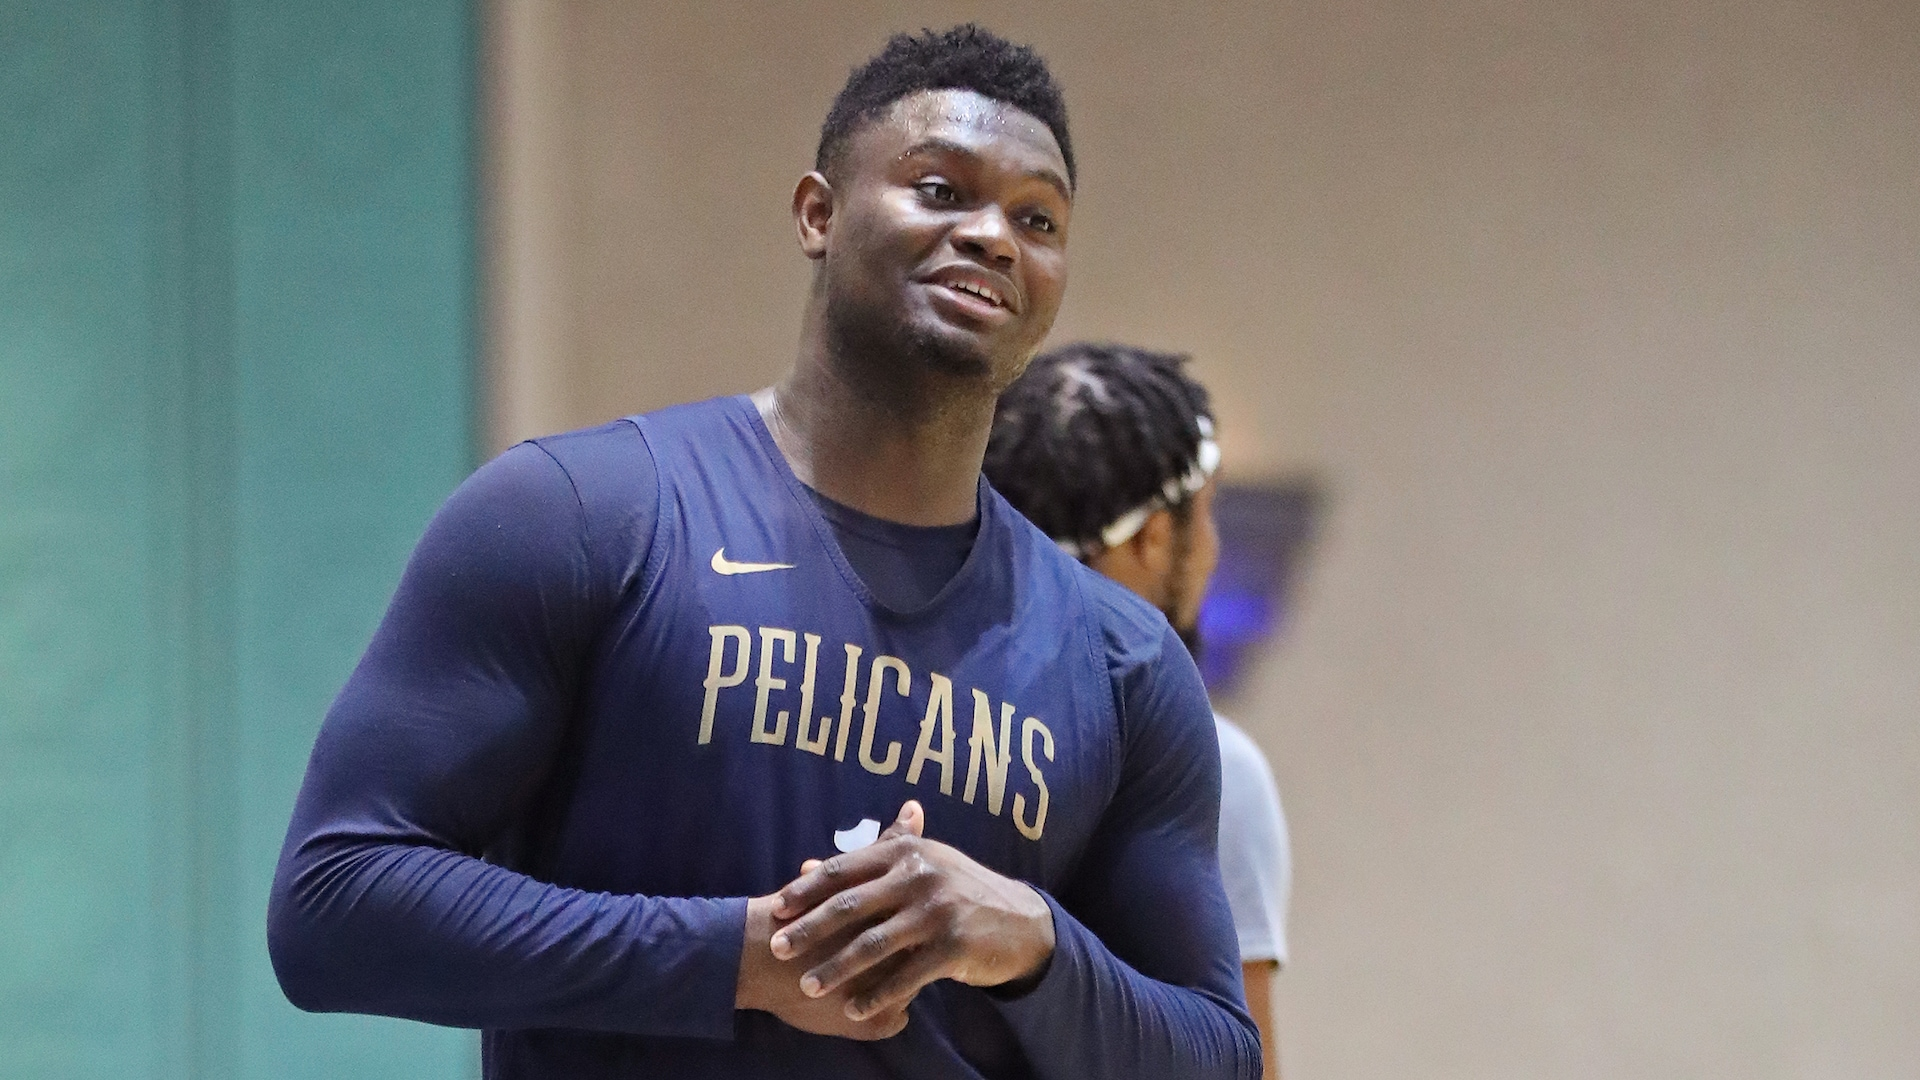 Report: Zion Williamson clears quarantine, set to practice on Tuesday